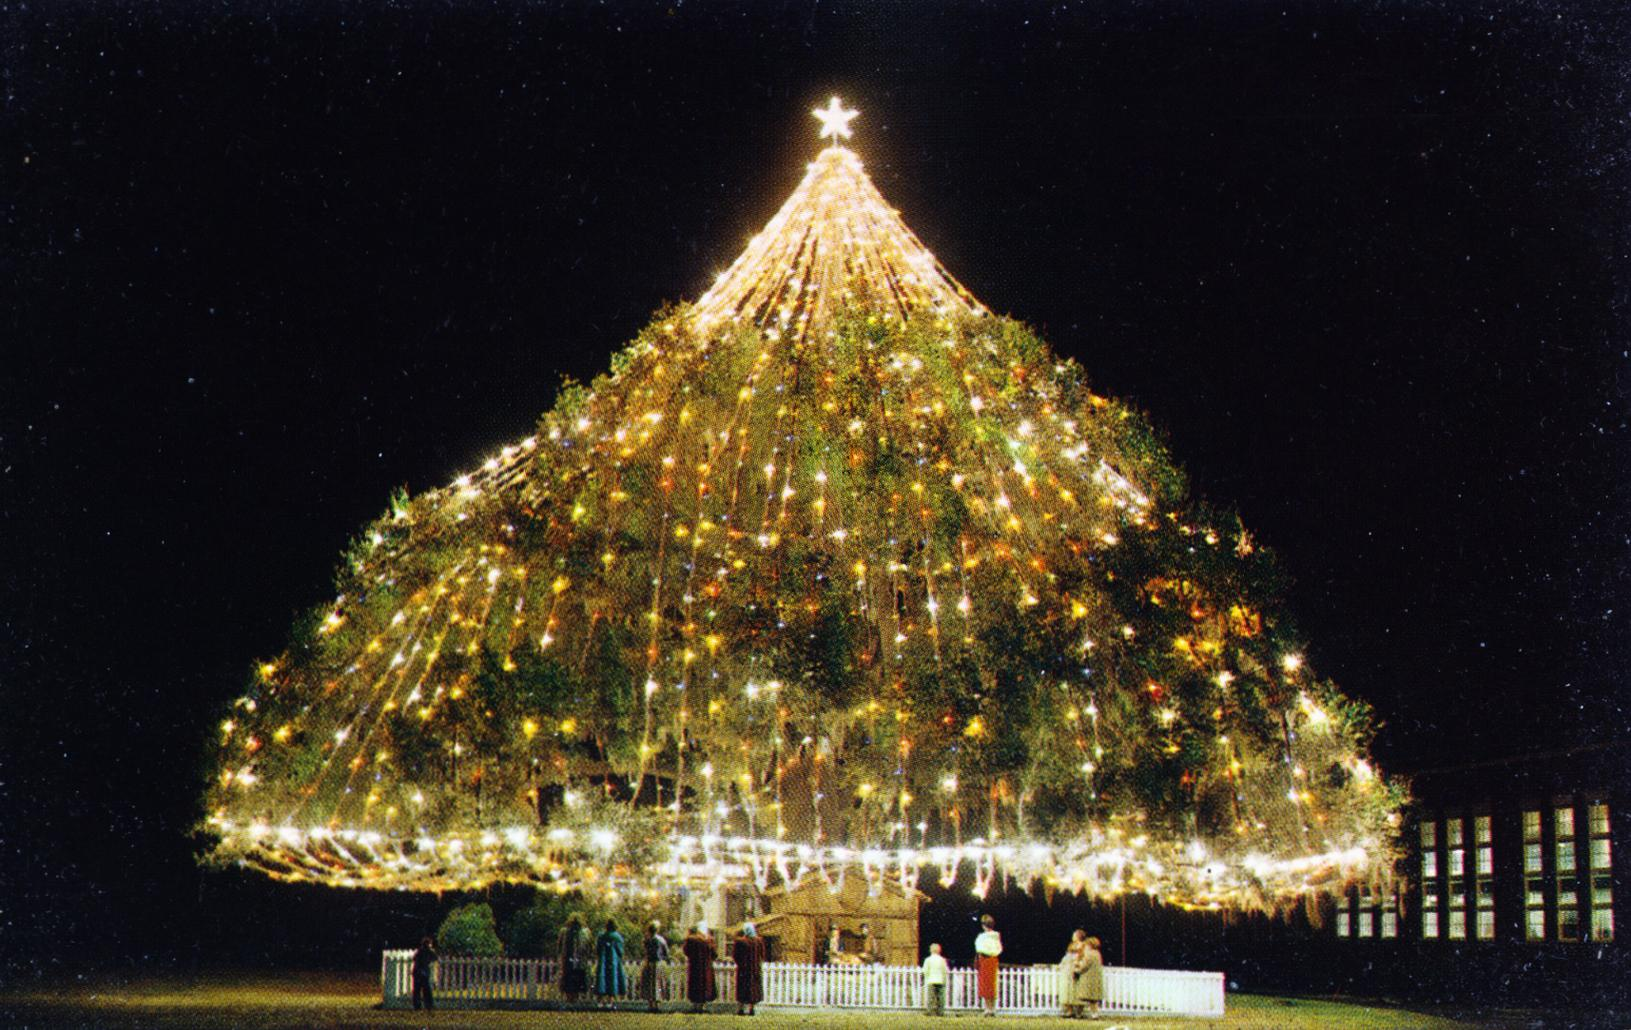 North Carolina World's Largest Living Christmas Tree Wilmington NC This three hundred year Live Oak is lighted with 4,000 multi-colored bulbs, and is viewed each December by a quarter of a million persons. Its limb spread is 110 feet and heights 55 feet.